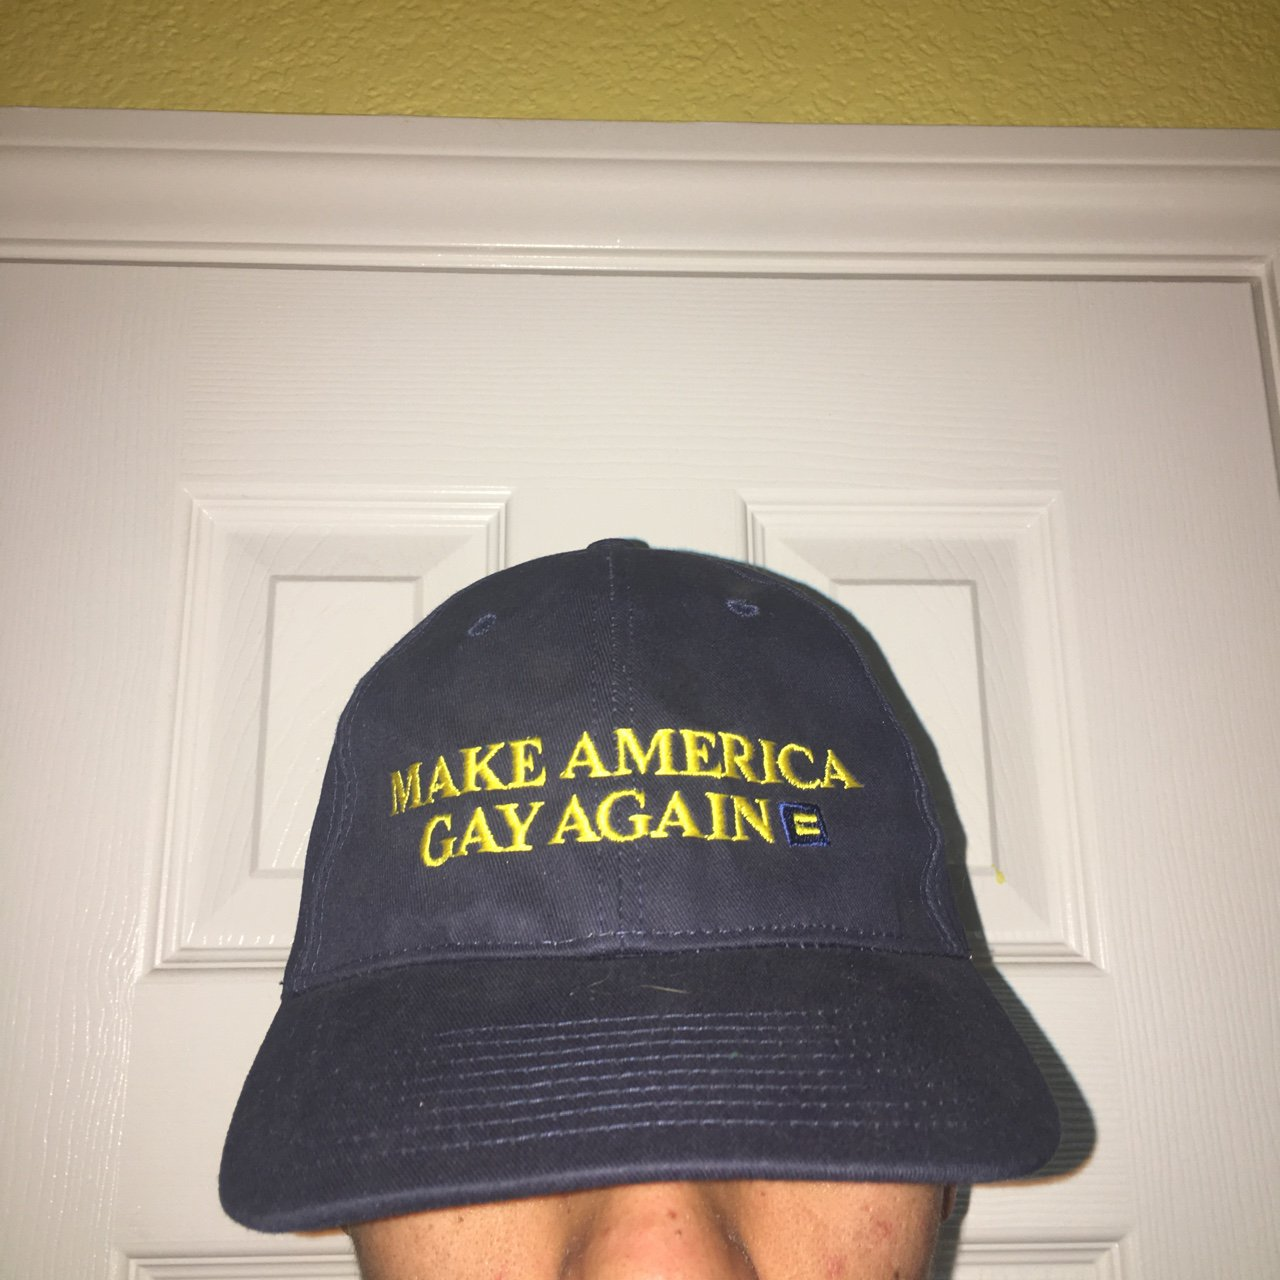 46af5cd6ea0 Make America Gay Again hat!! Purchased a while ago